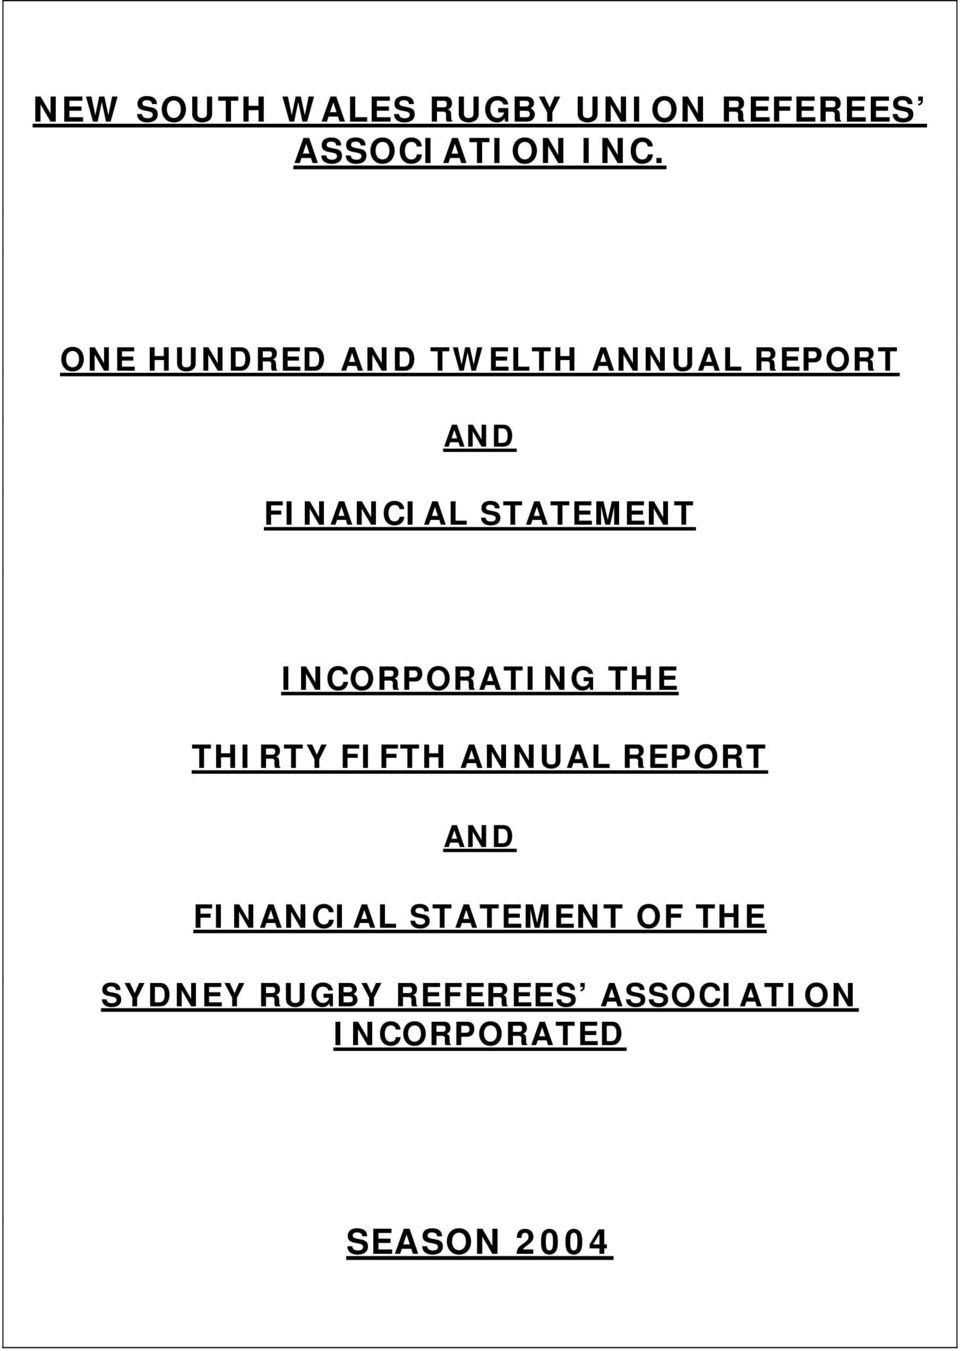 INCORPORATING THE THIRTY FIFTH ANNUAL REPORT AND FINANCIAL